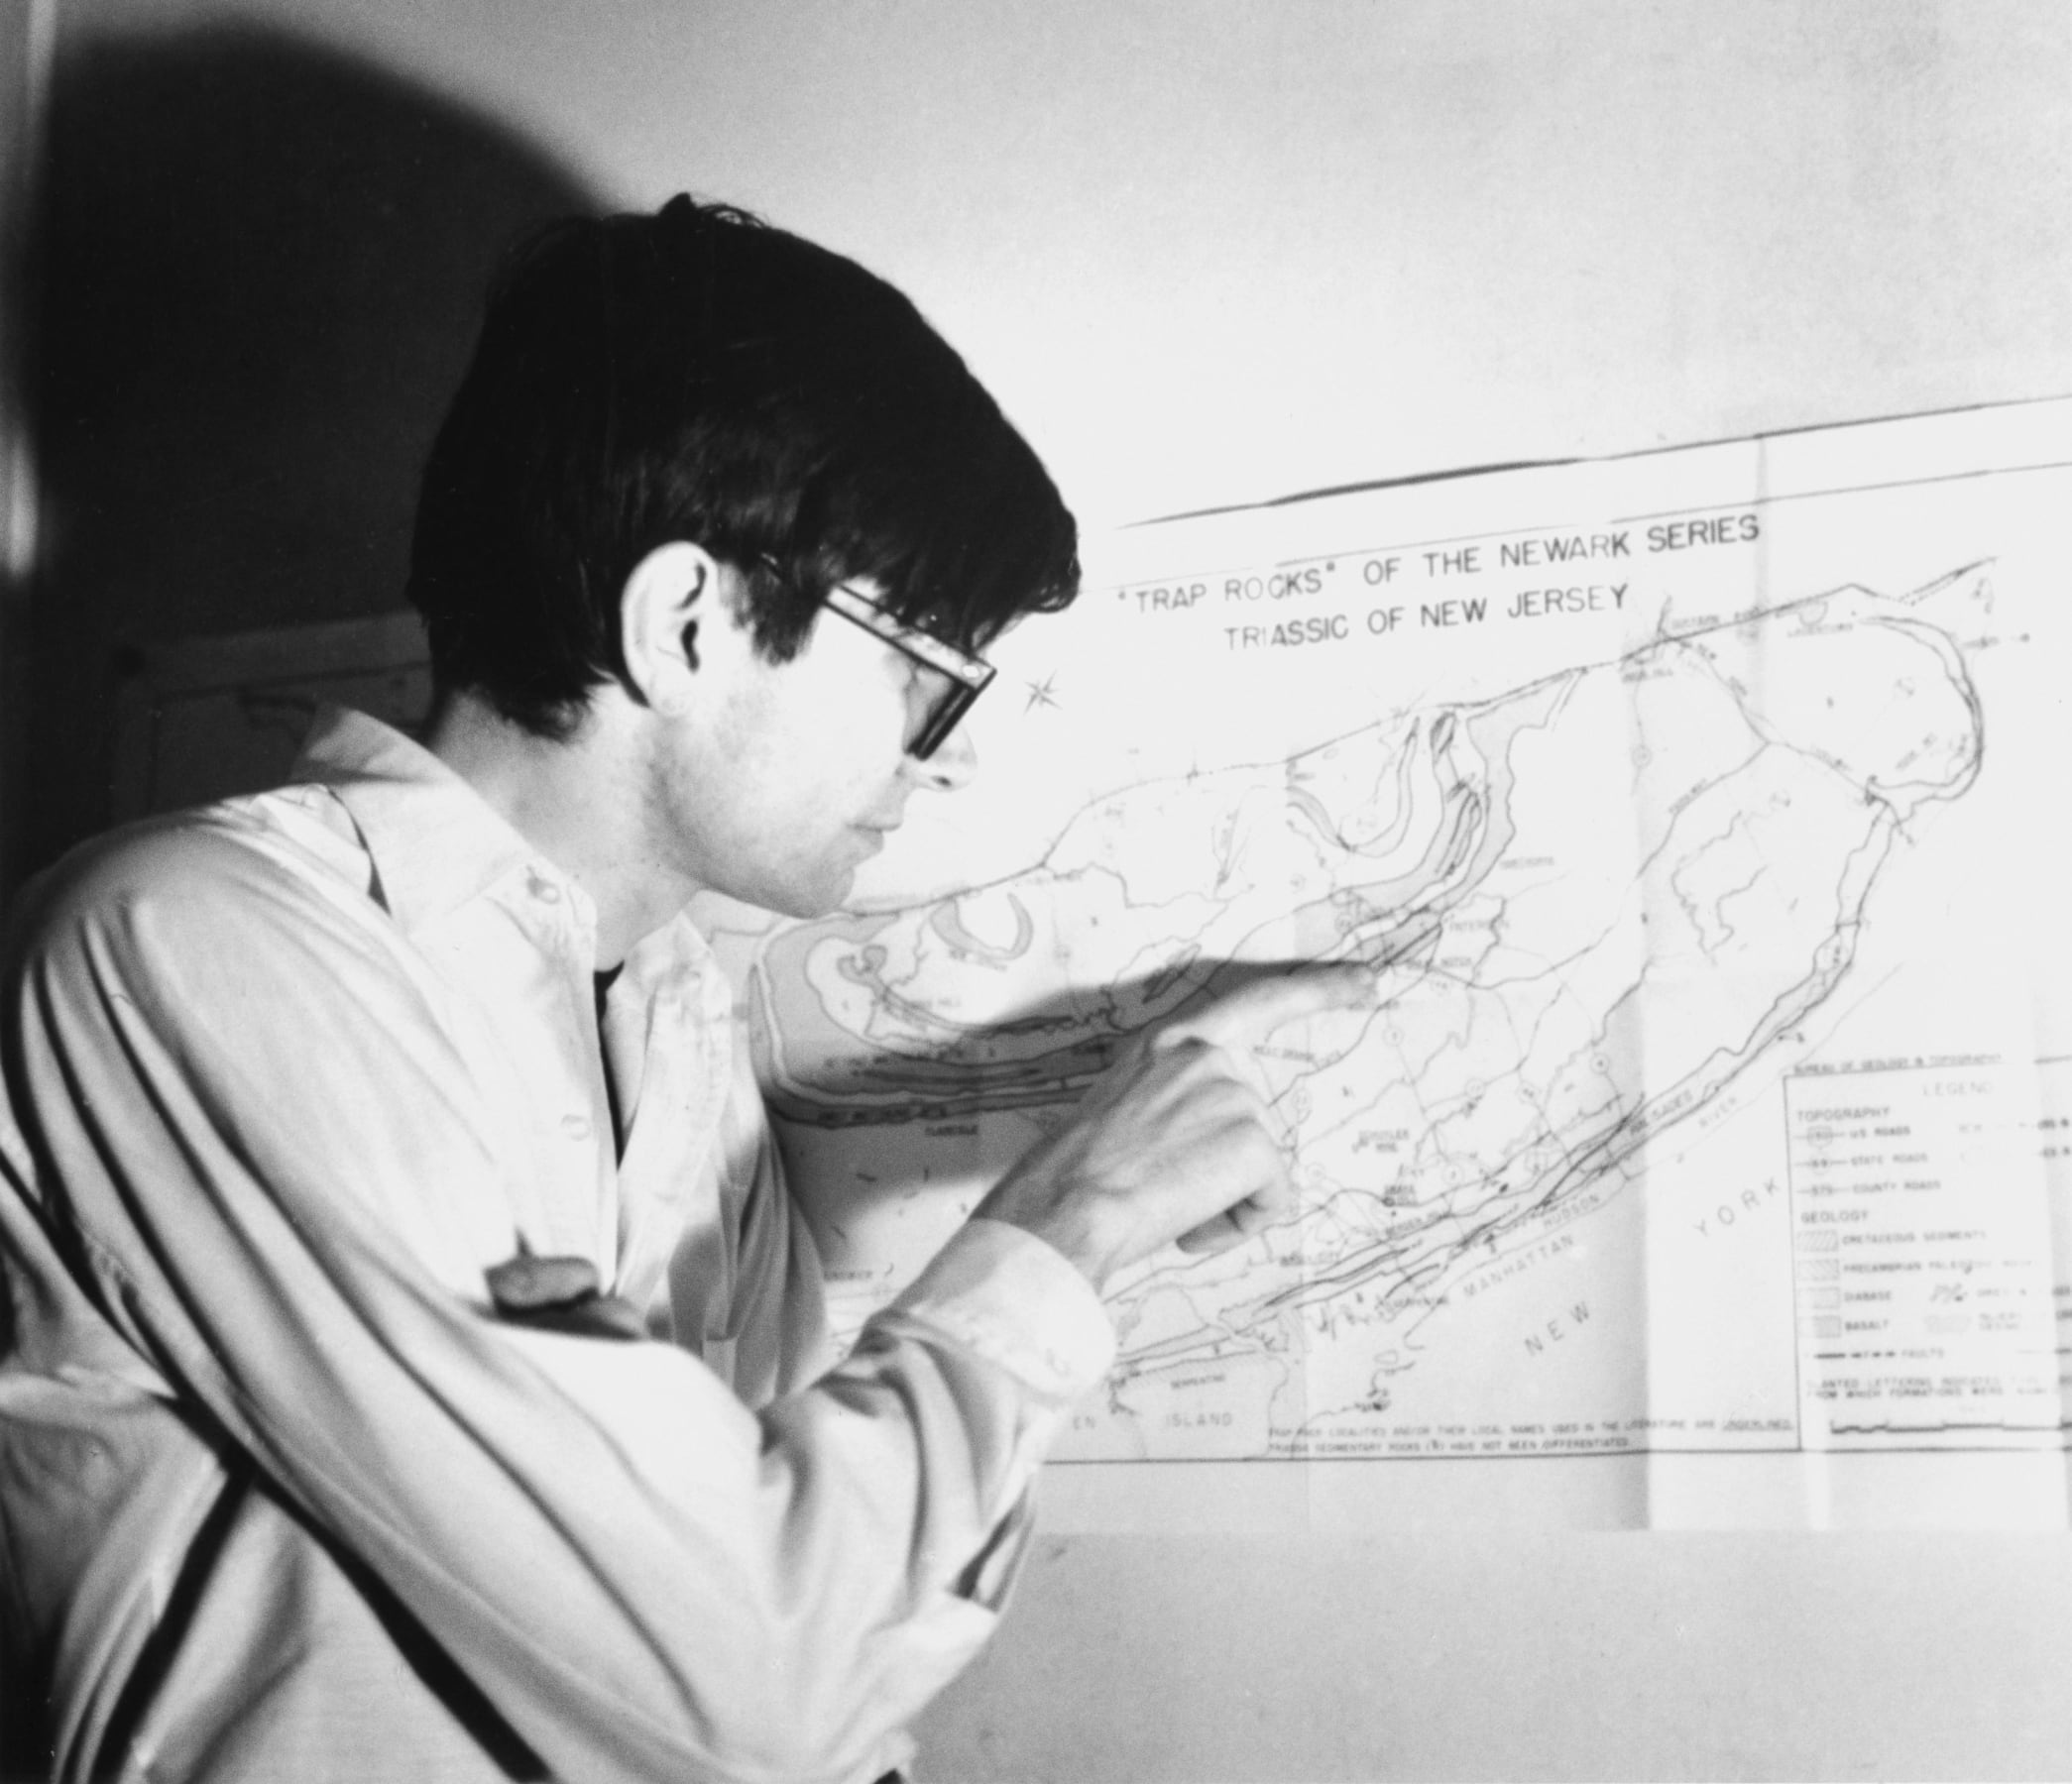 Robert Smithson pointing to a place on a map